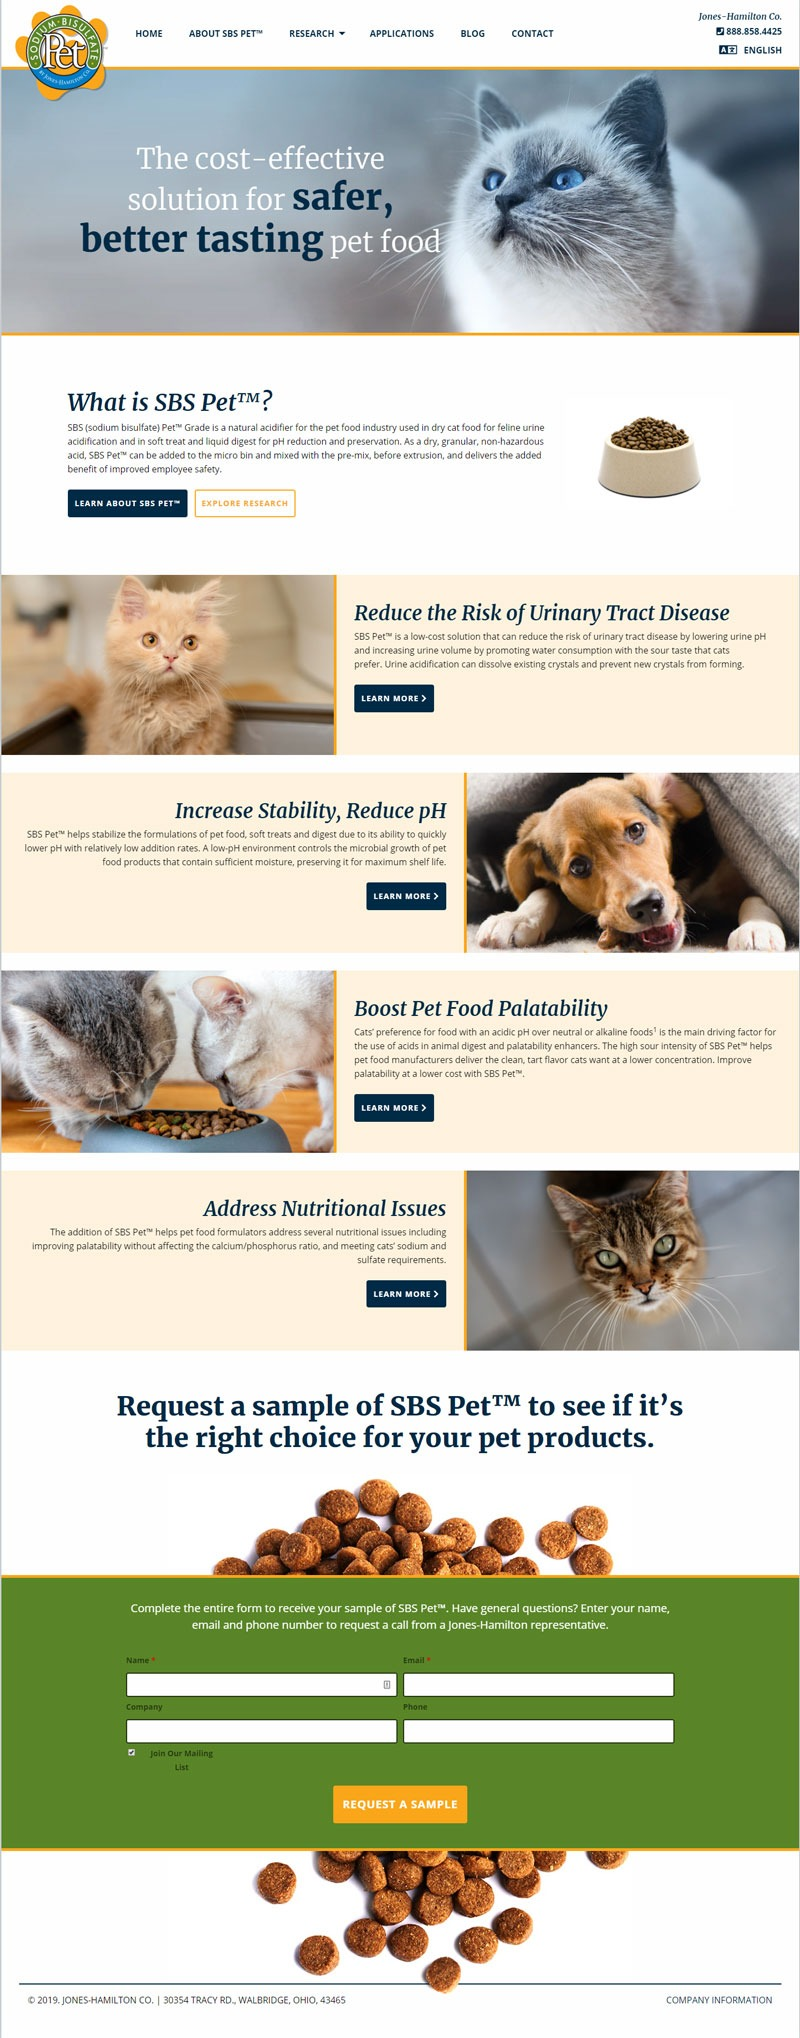 Mockup for B2B client website for pet food additive called SBS Pet.